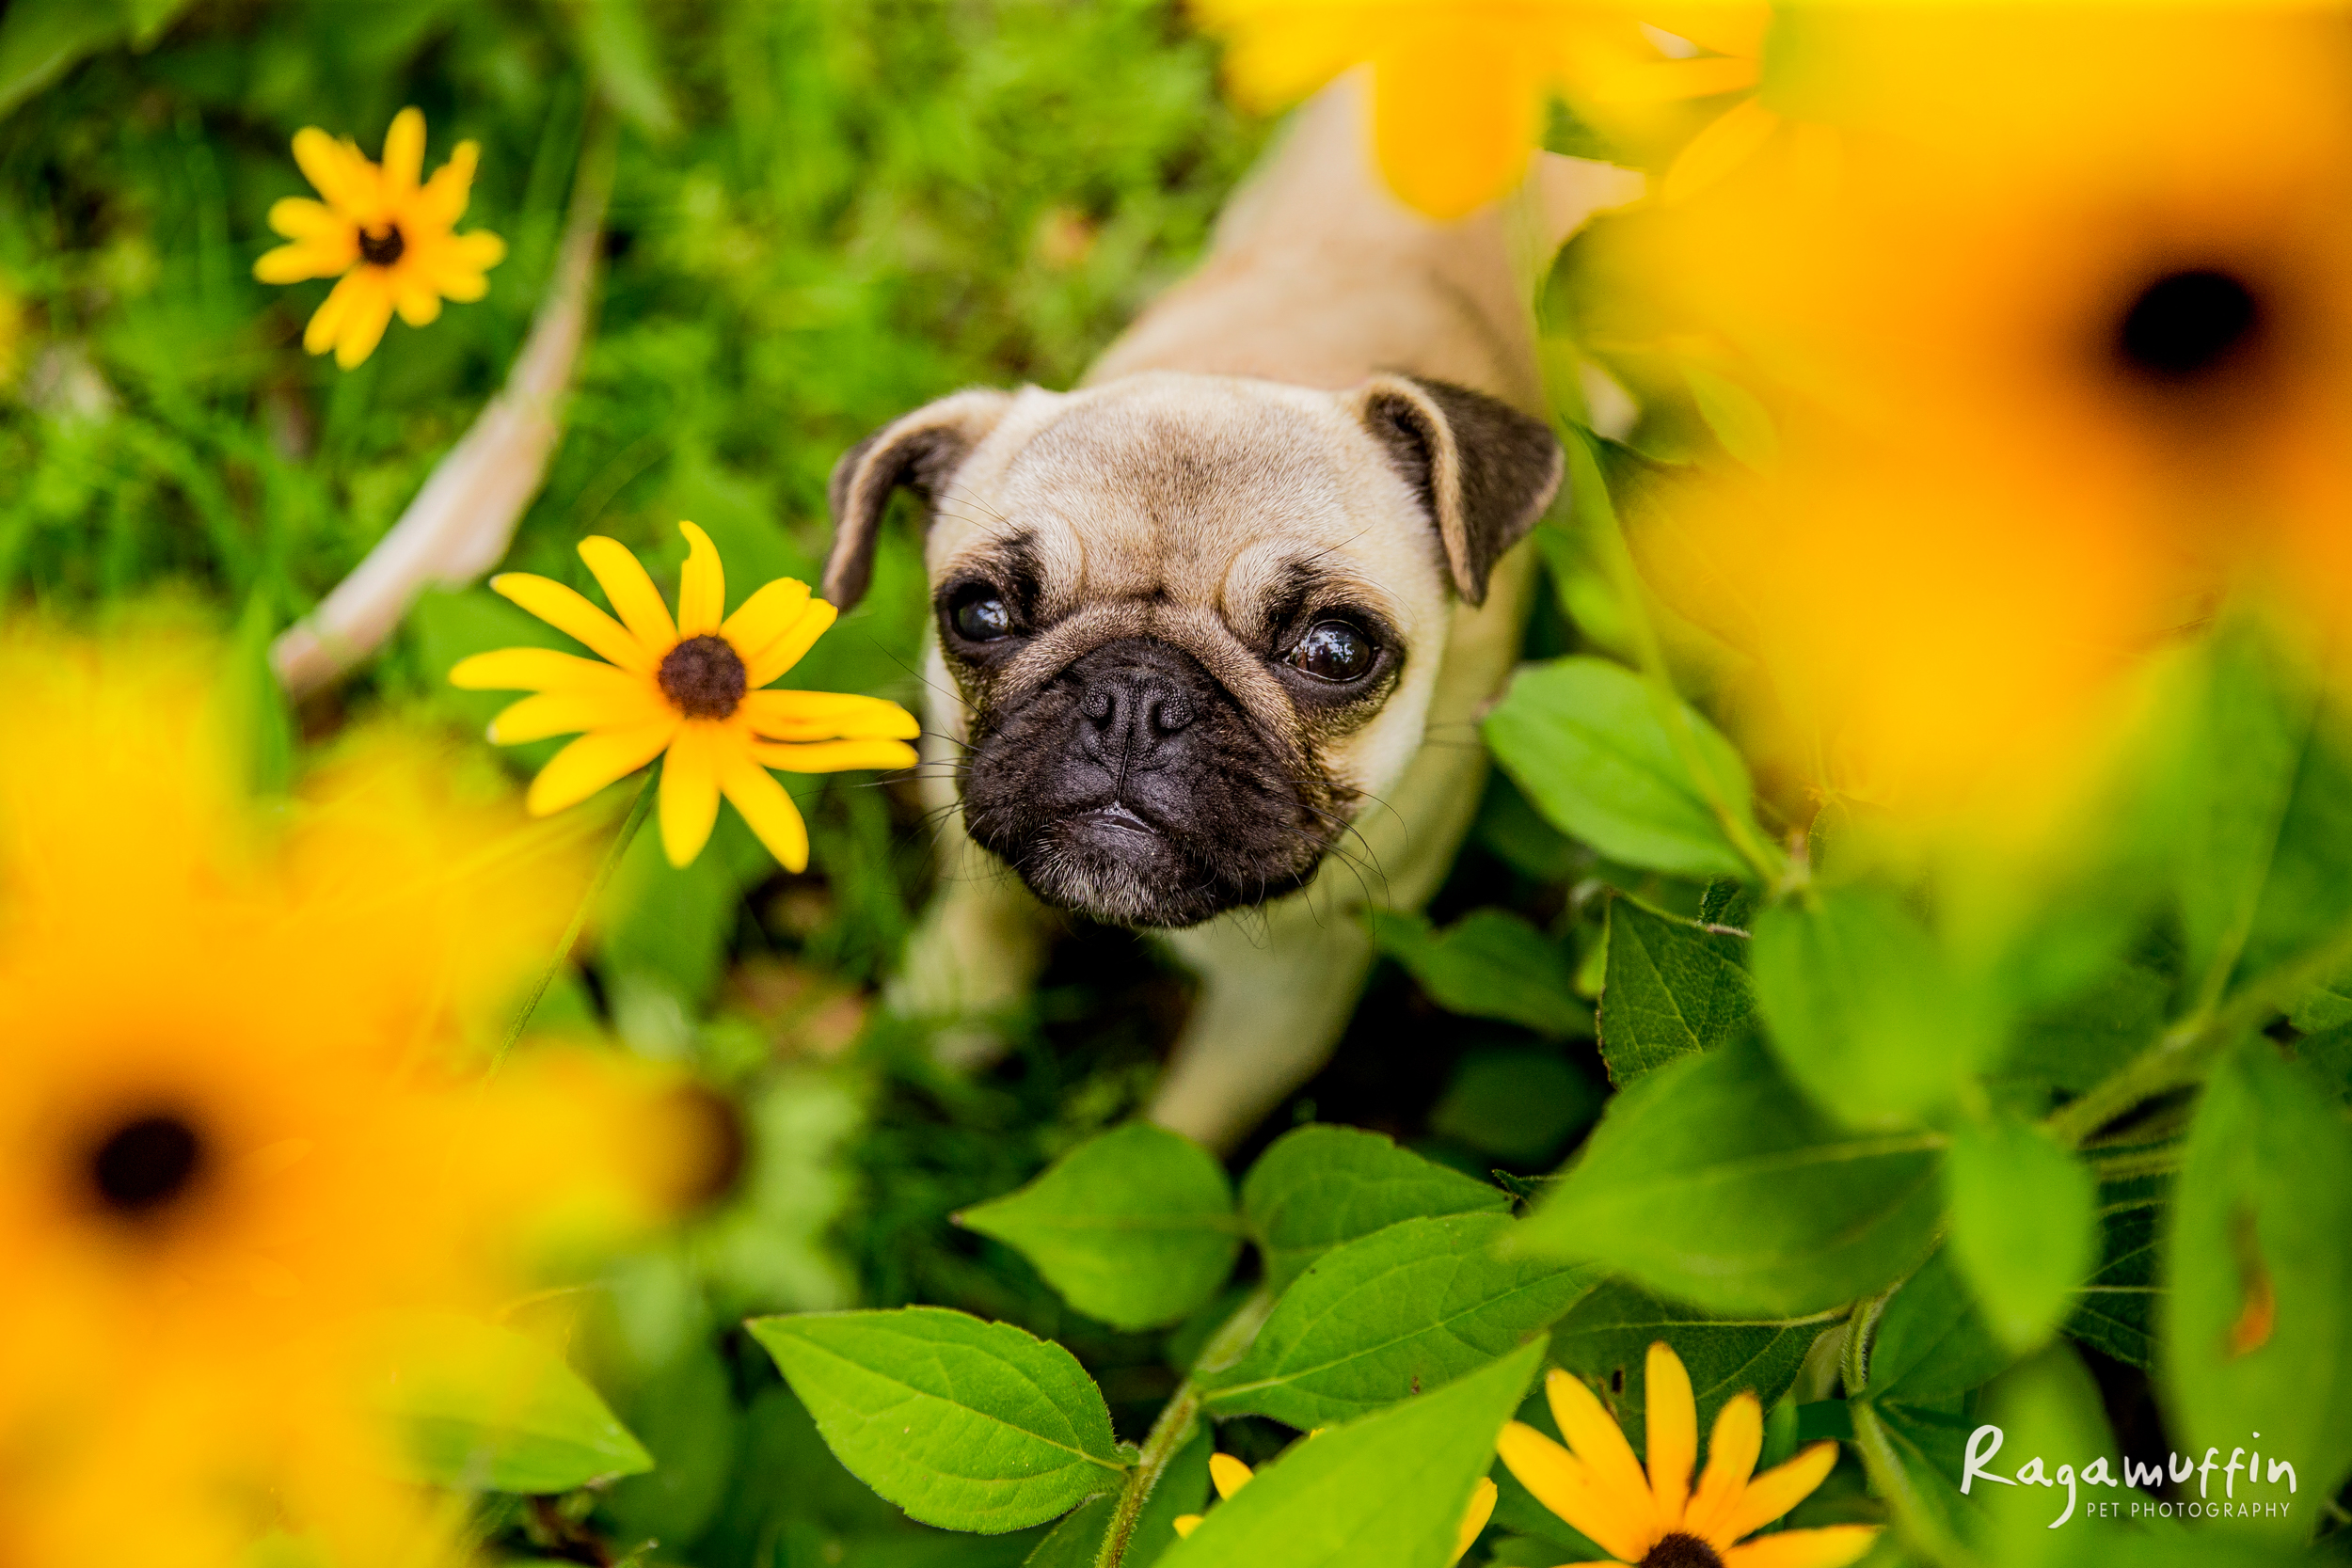 pug-puppy-in-flowers